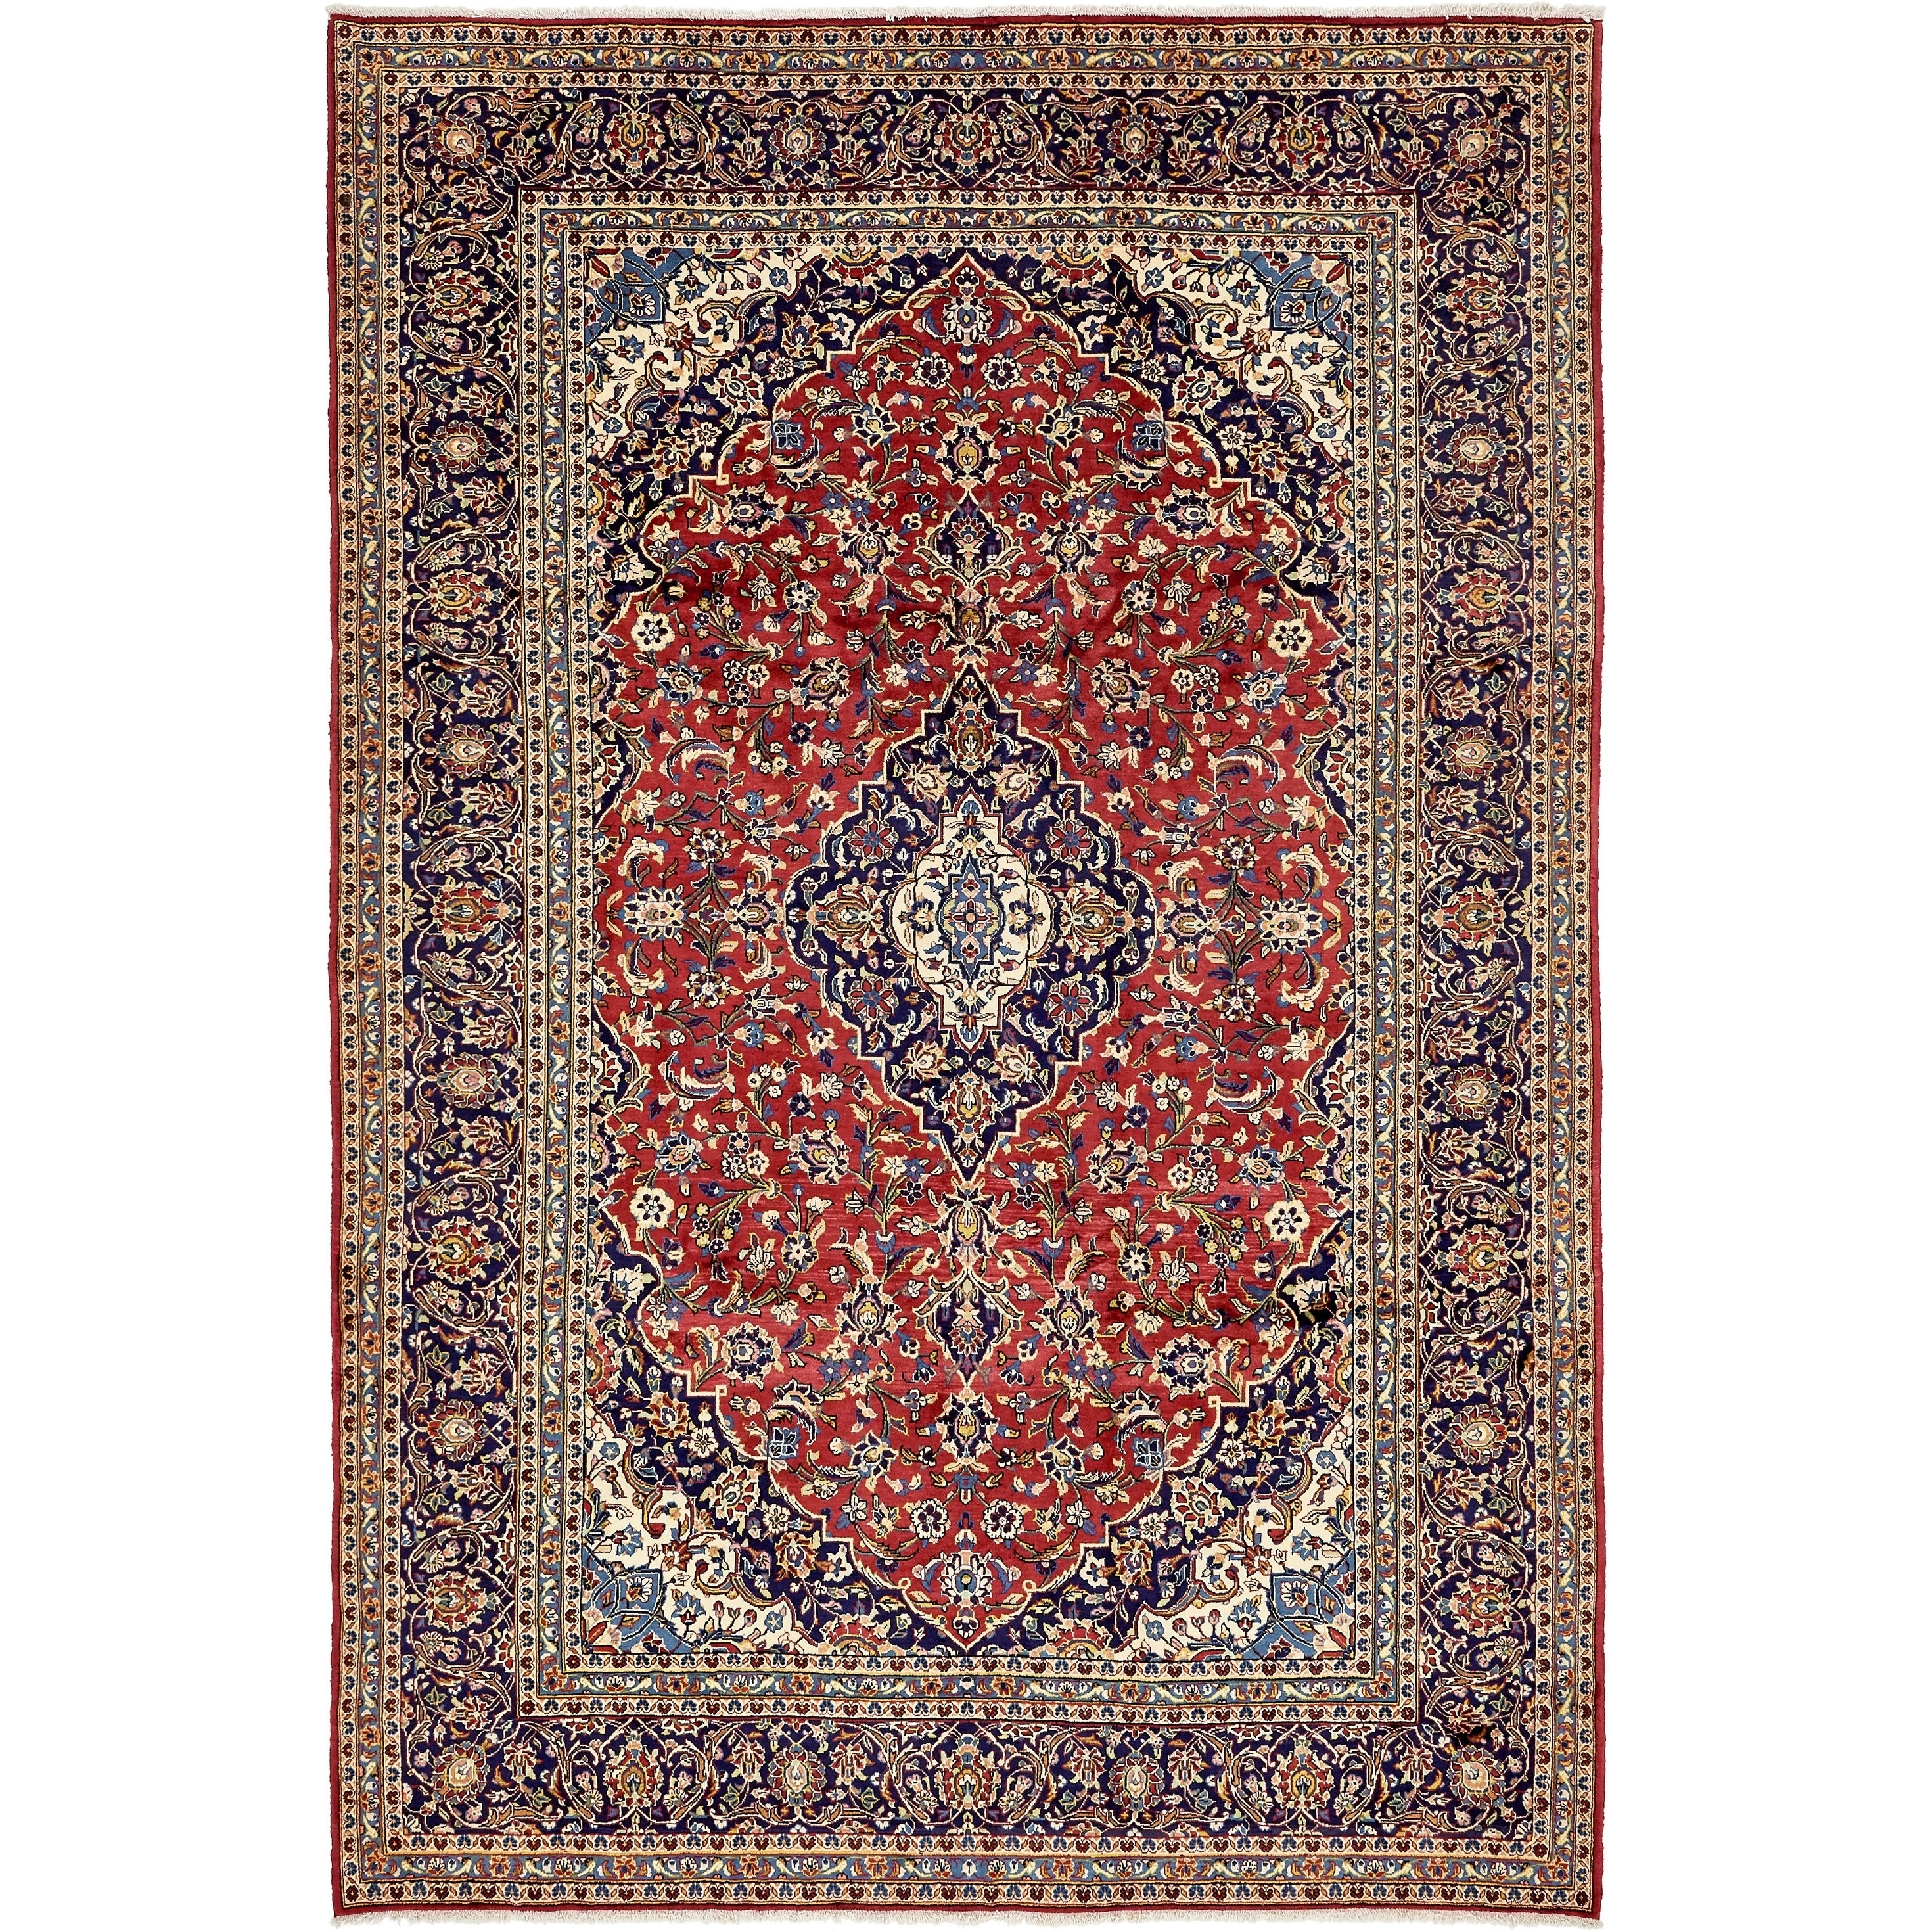 Hand Knotted Kashan Semi Antique Wool Area Rug - 8 2 x 12 3 (Red - 8 2 x 12 3)